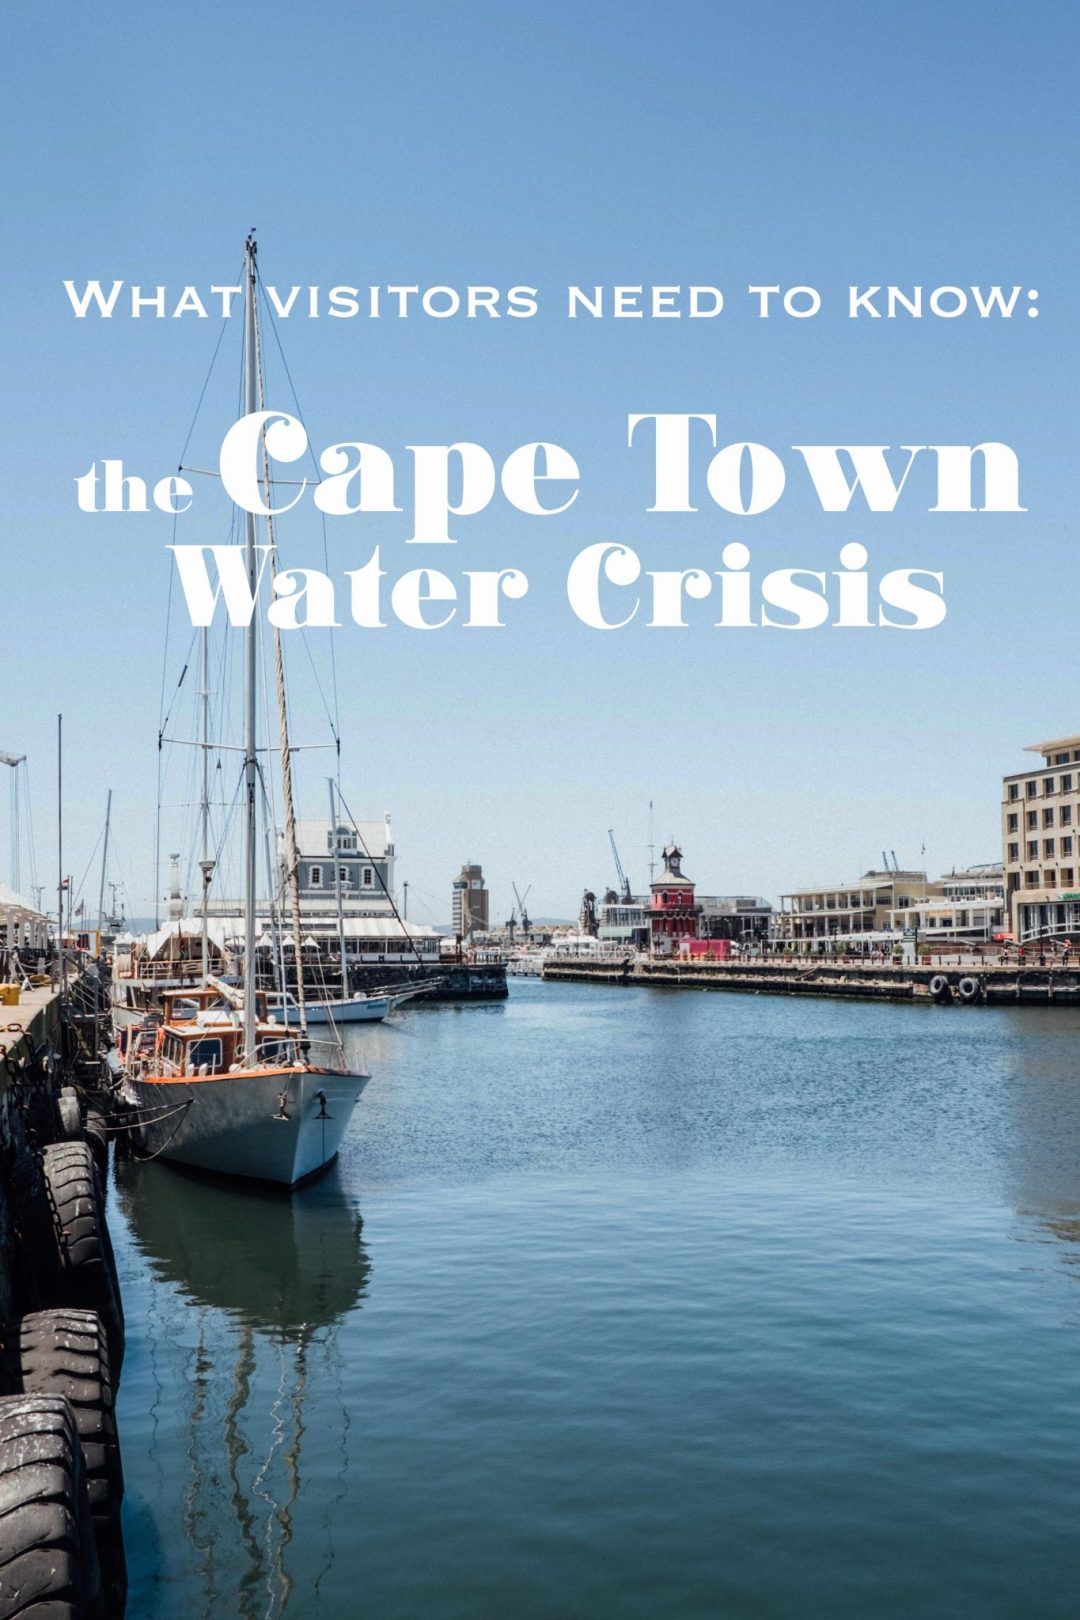 a harbor with a sailing boat text overlay - the cape town water crisis